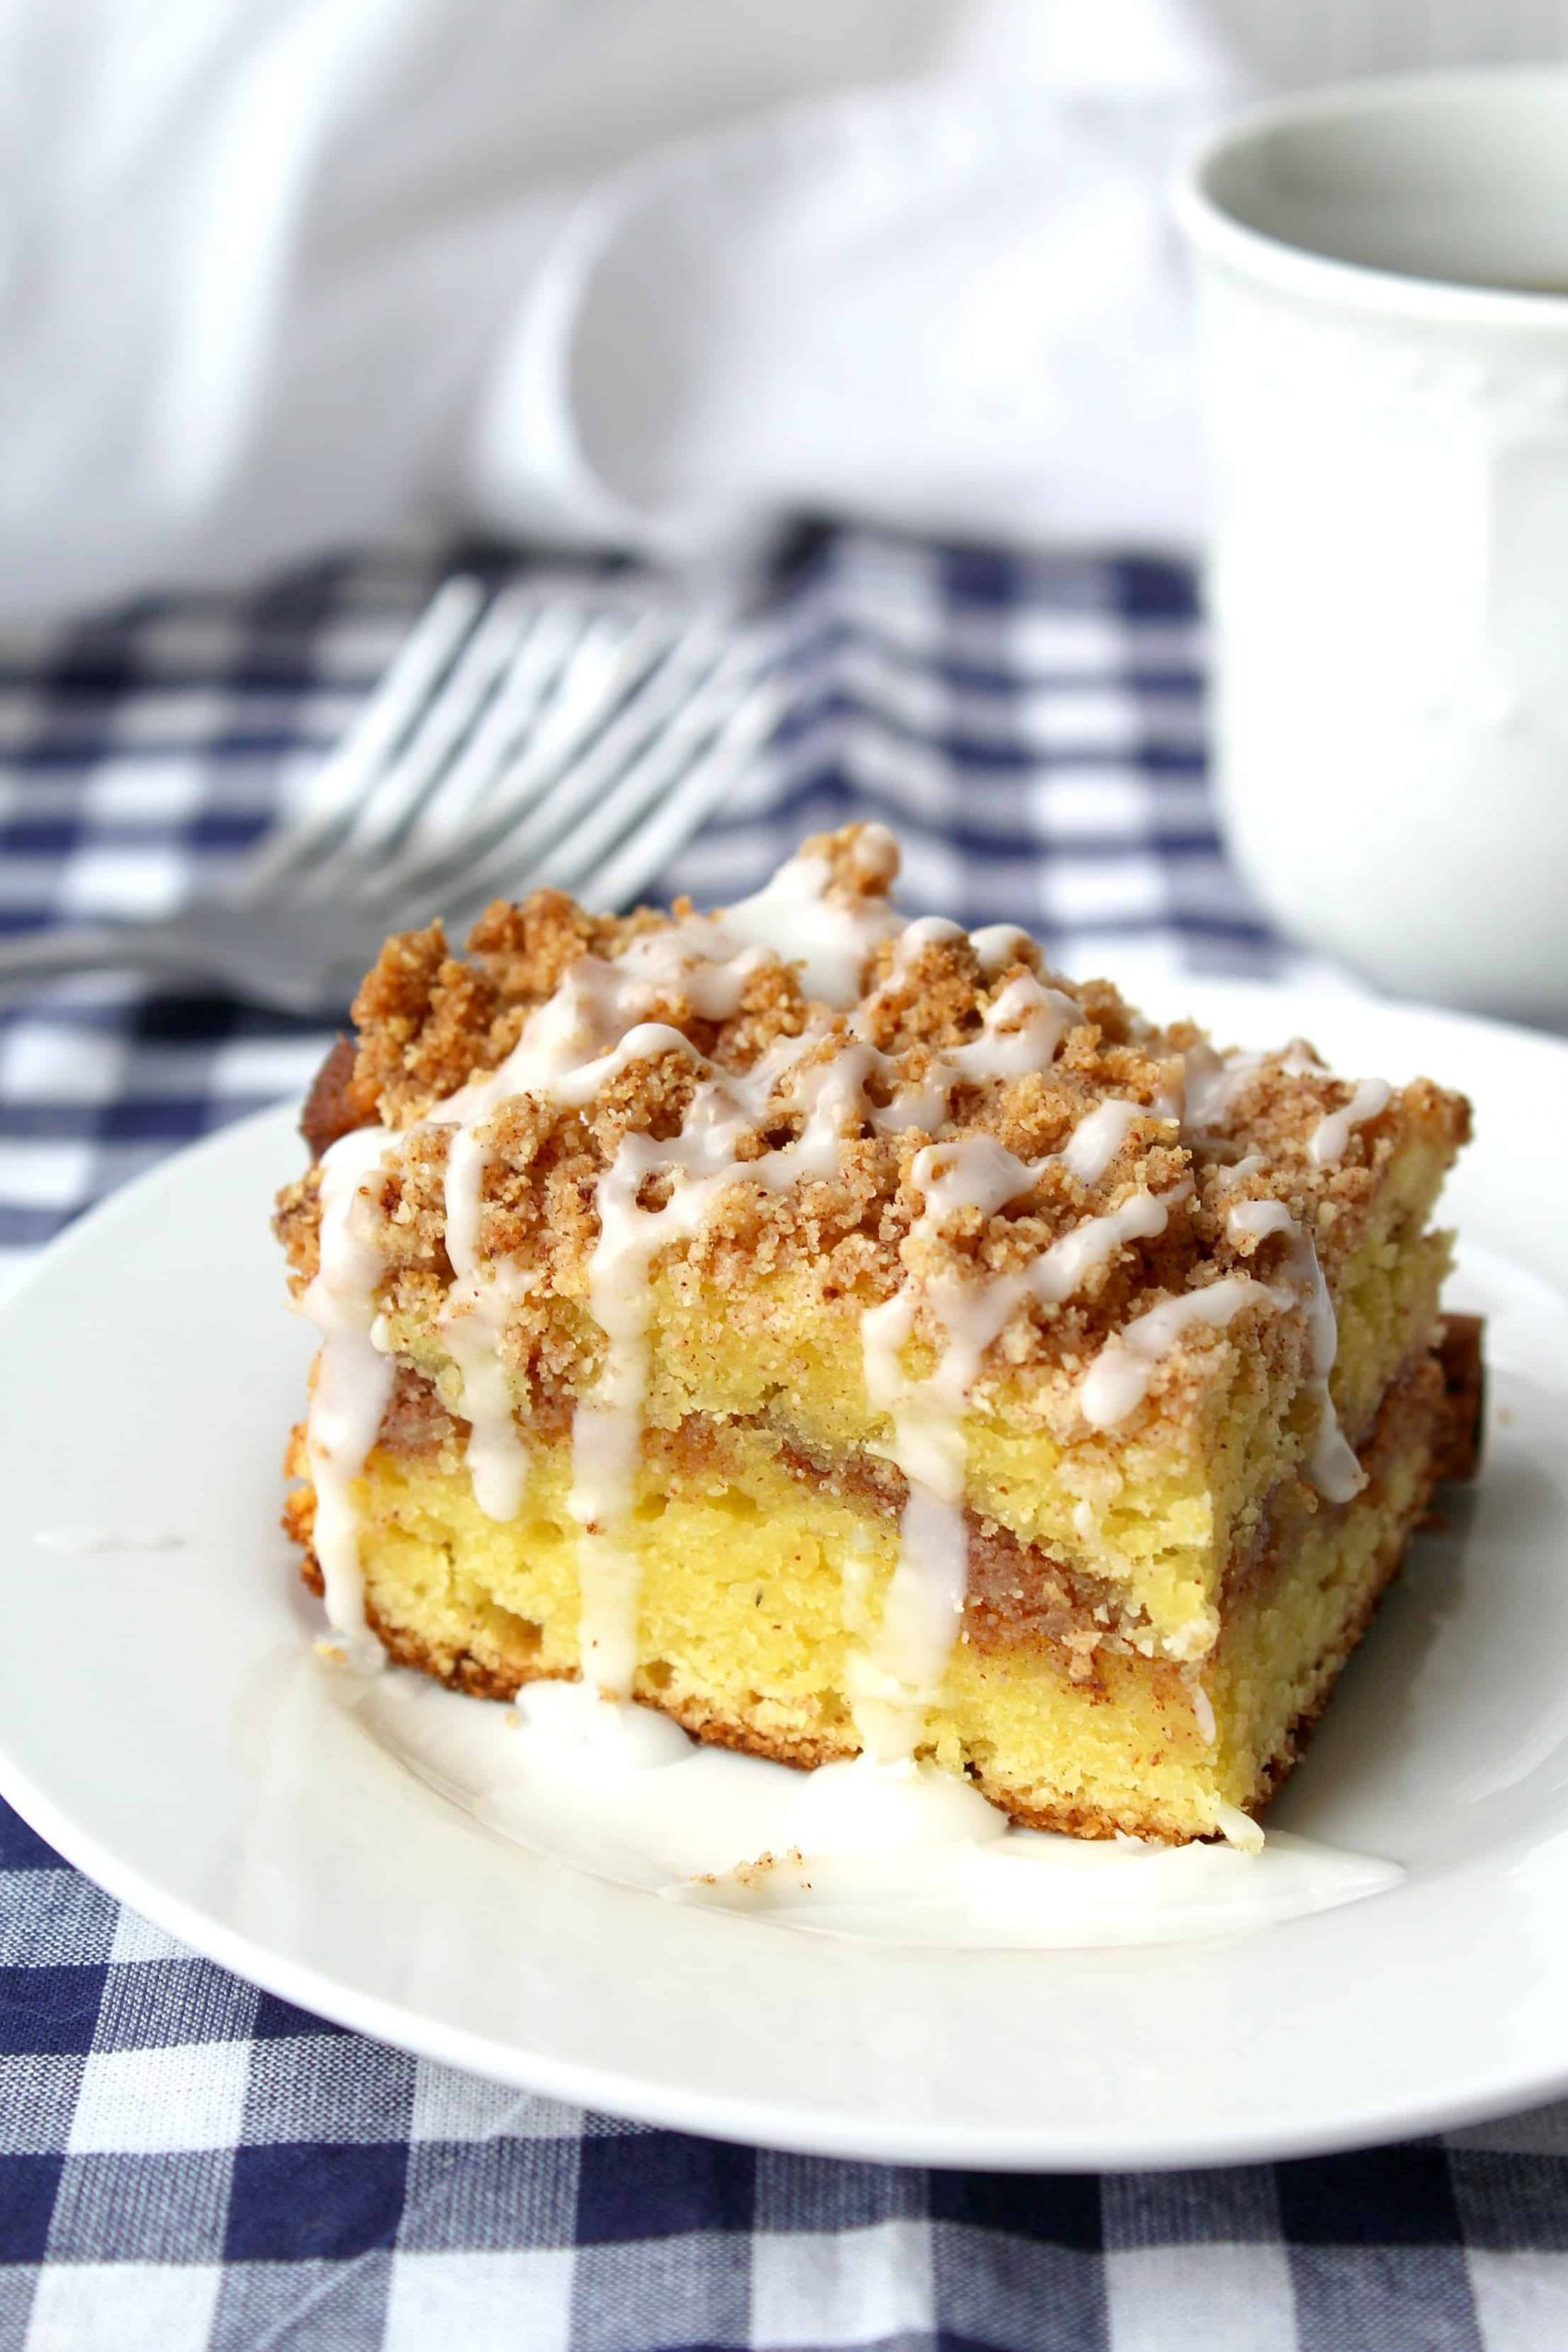 Keto Coffee Cake Recipe Only 3 Net Carbs Per Slice